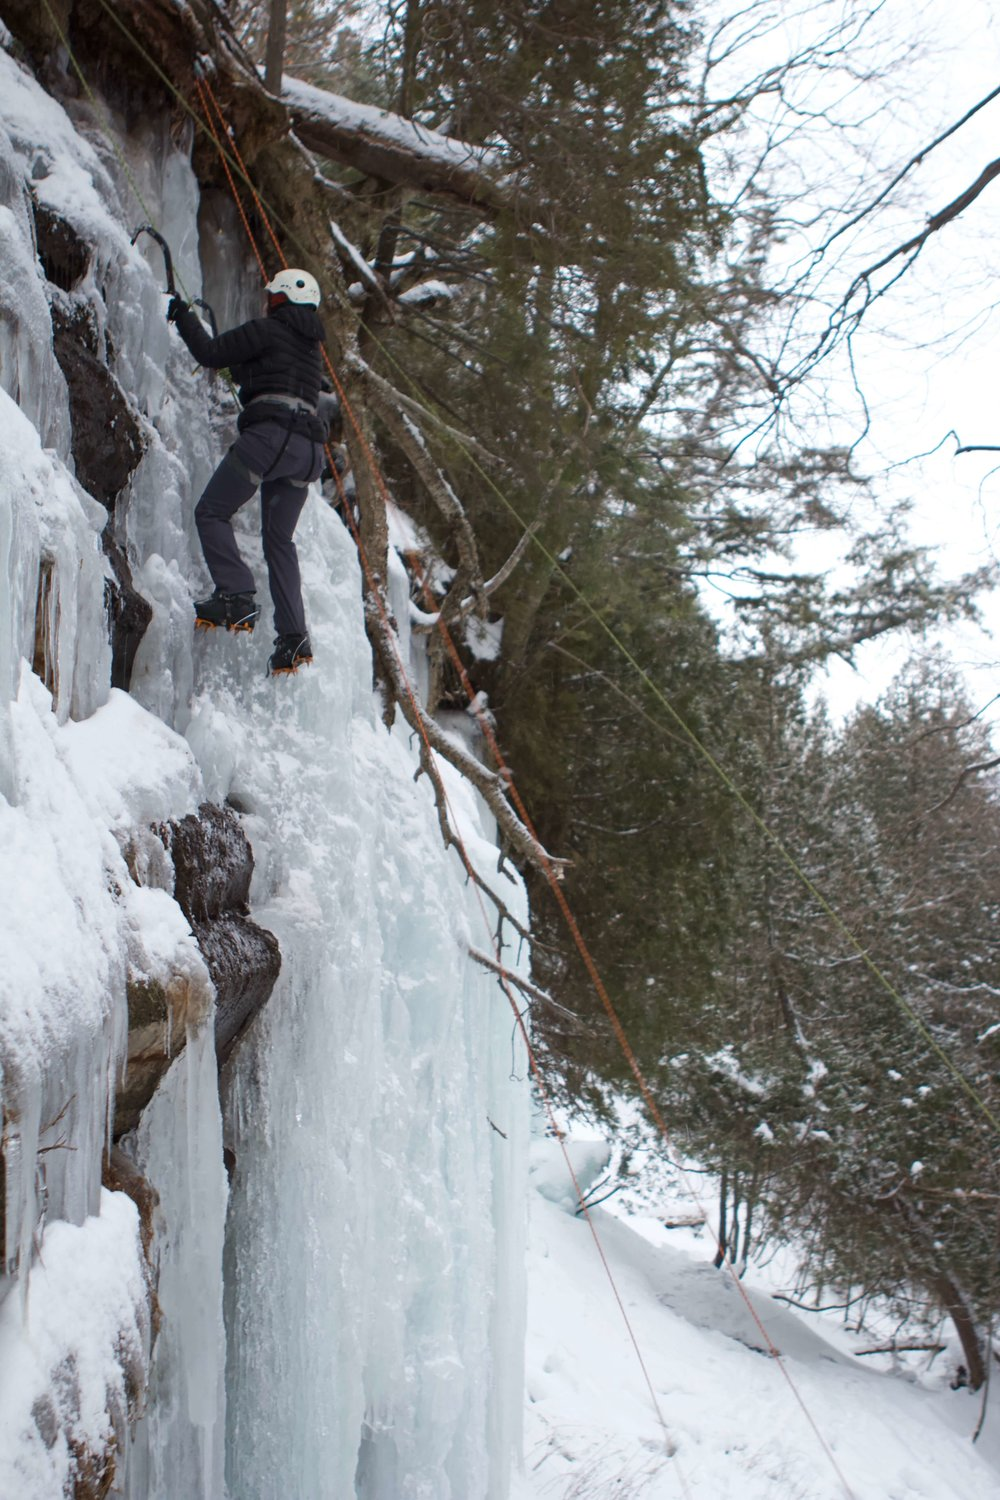 ice-climbing-michigan-emsontheroad.jpg